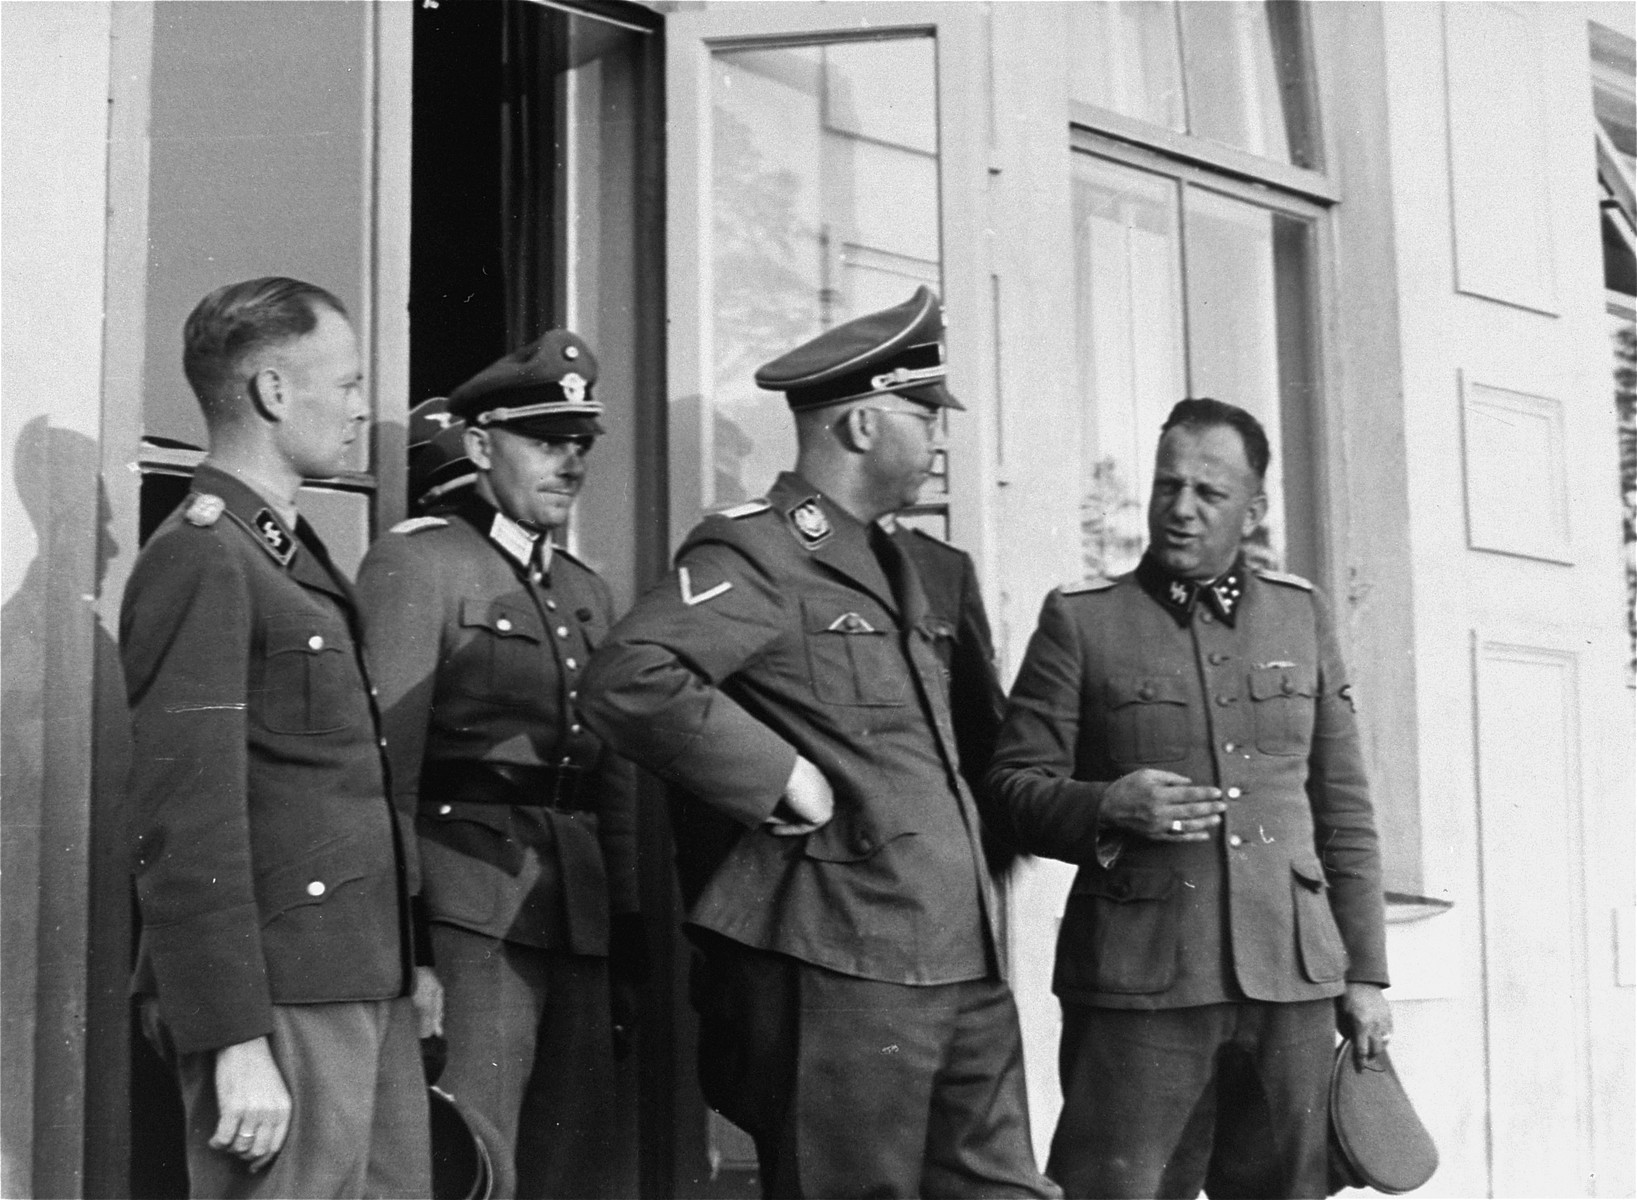 Heinrich Himmler with other Nazi officials.  [Also pictured are probably Walther Hewel and Otto Guensche.]